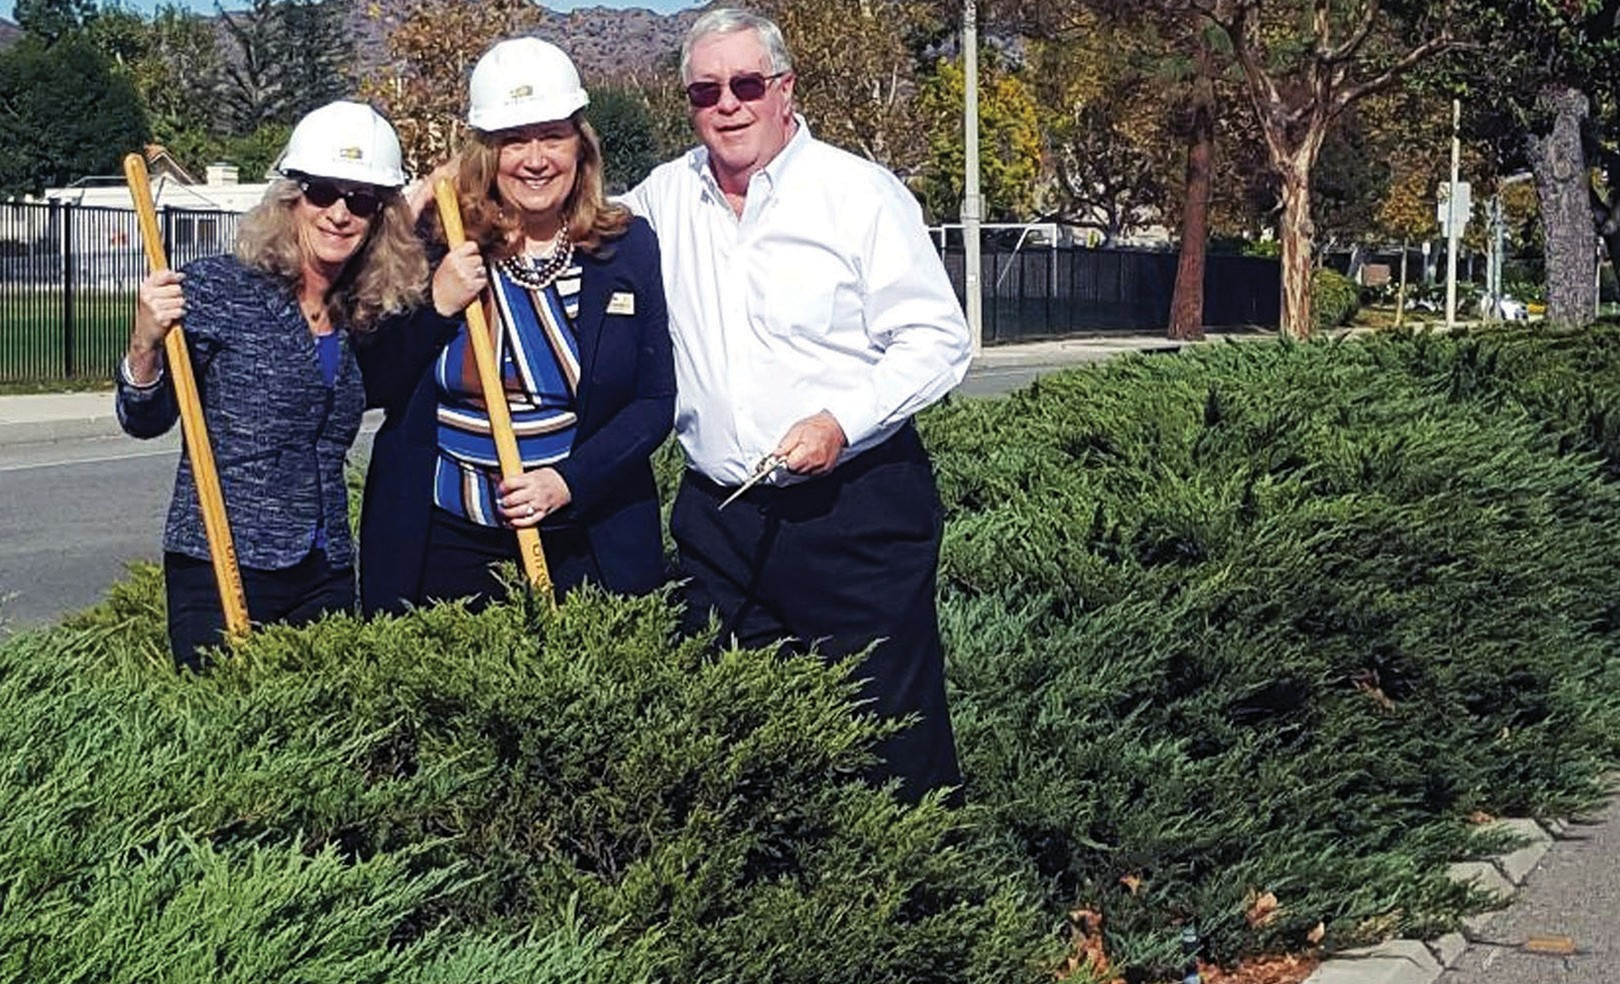 GOODBYE JUNIPERS—From left, Agoura Hills City Councilmembers Illece Buckley Weber, Linda Northrup and Denis Weber take thefirst crack at replacing old trees and shrubs along Kanan Road. STEPHANIE BERTHOLDO/ Acorn Newspapers